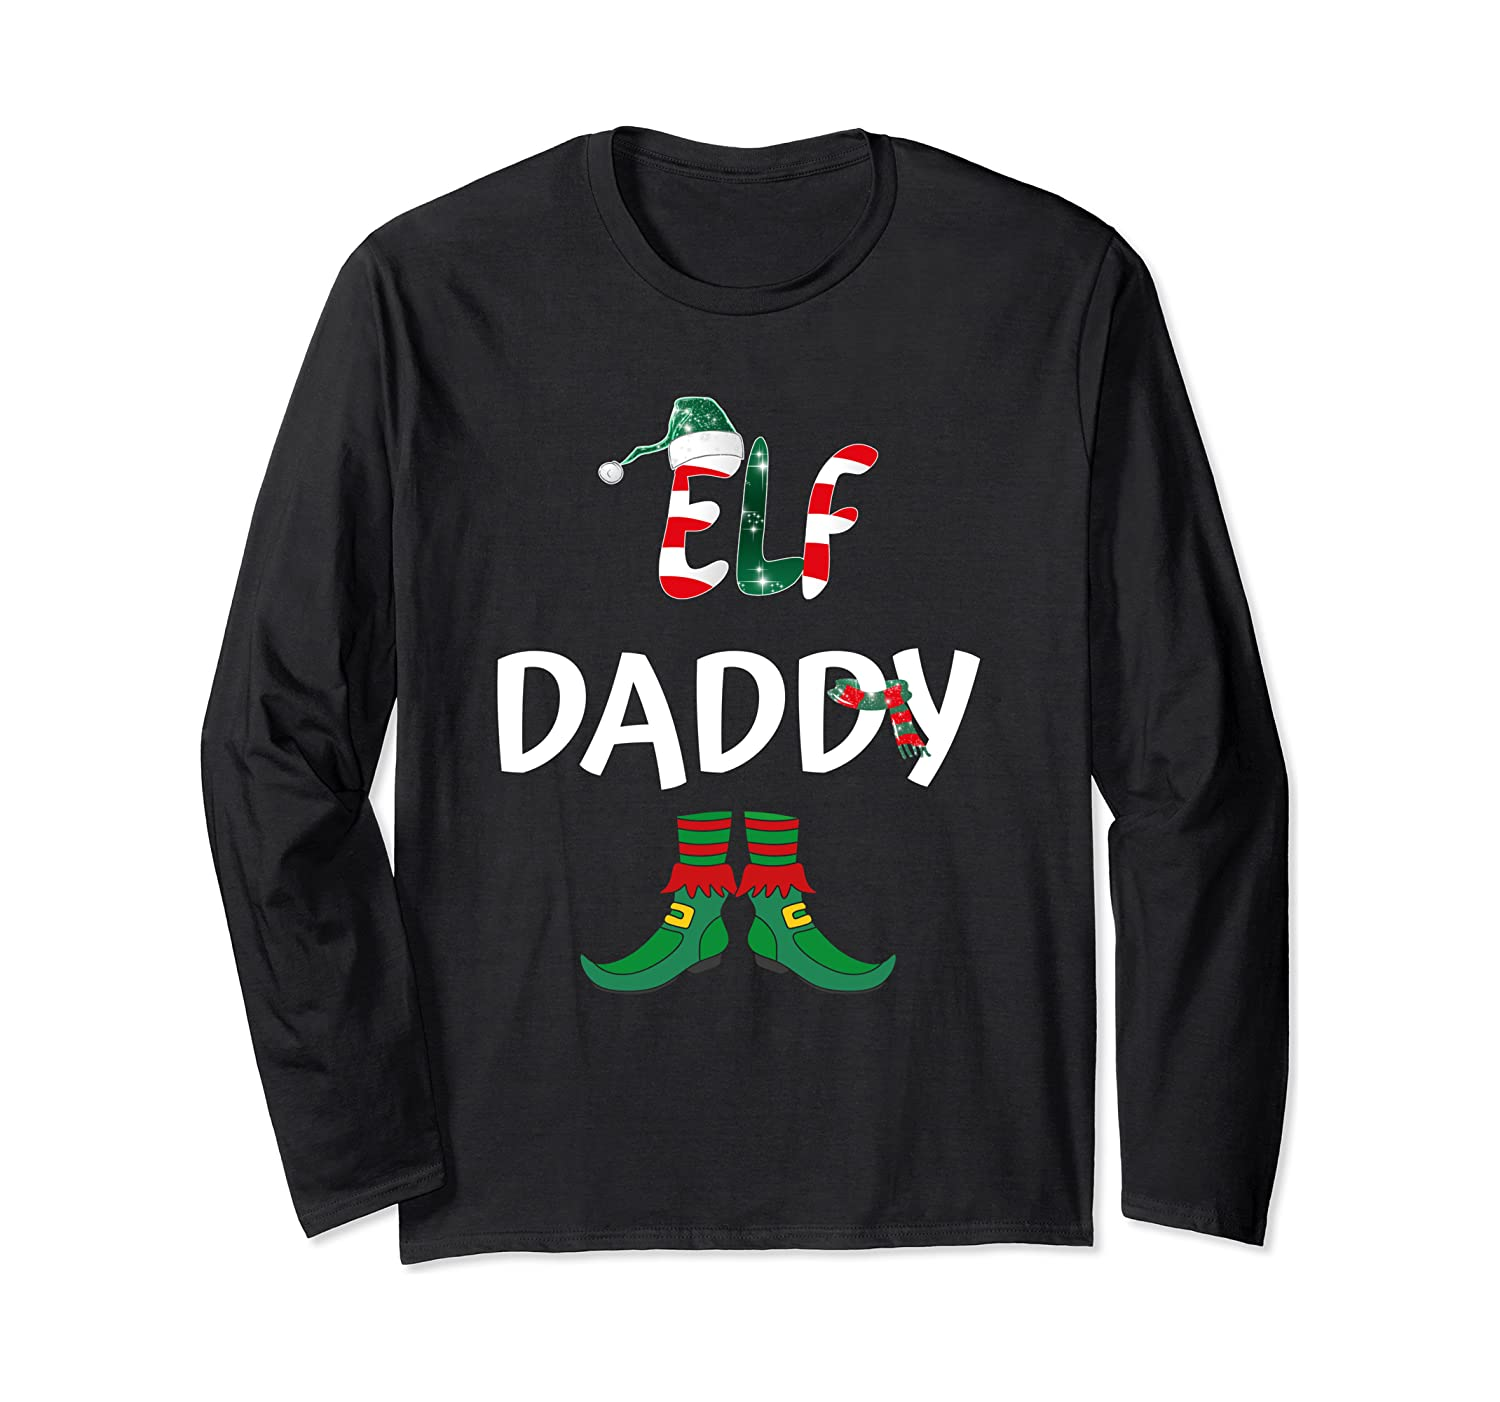 Daddy Elf Christmas Matching Family Outfit Dad Xmas Gift Long Sleeve T Shirt